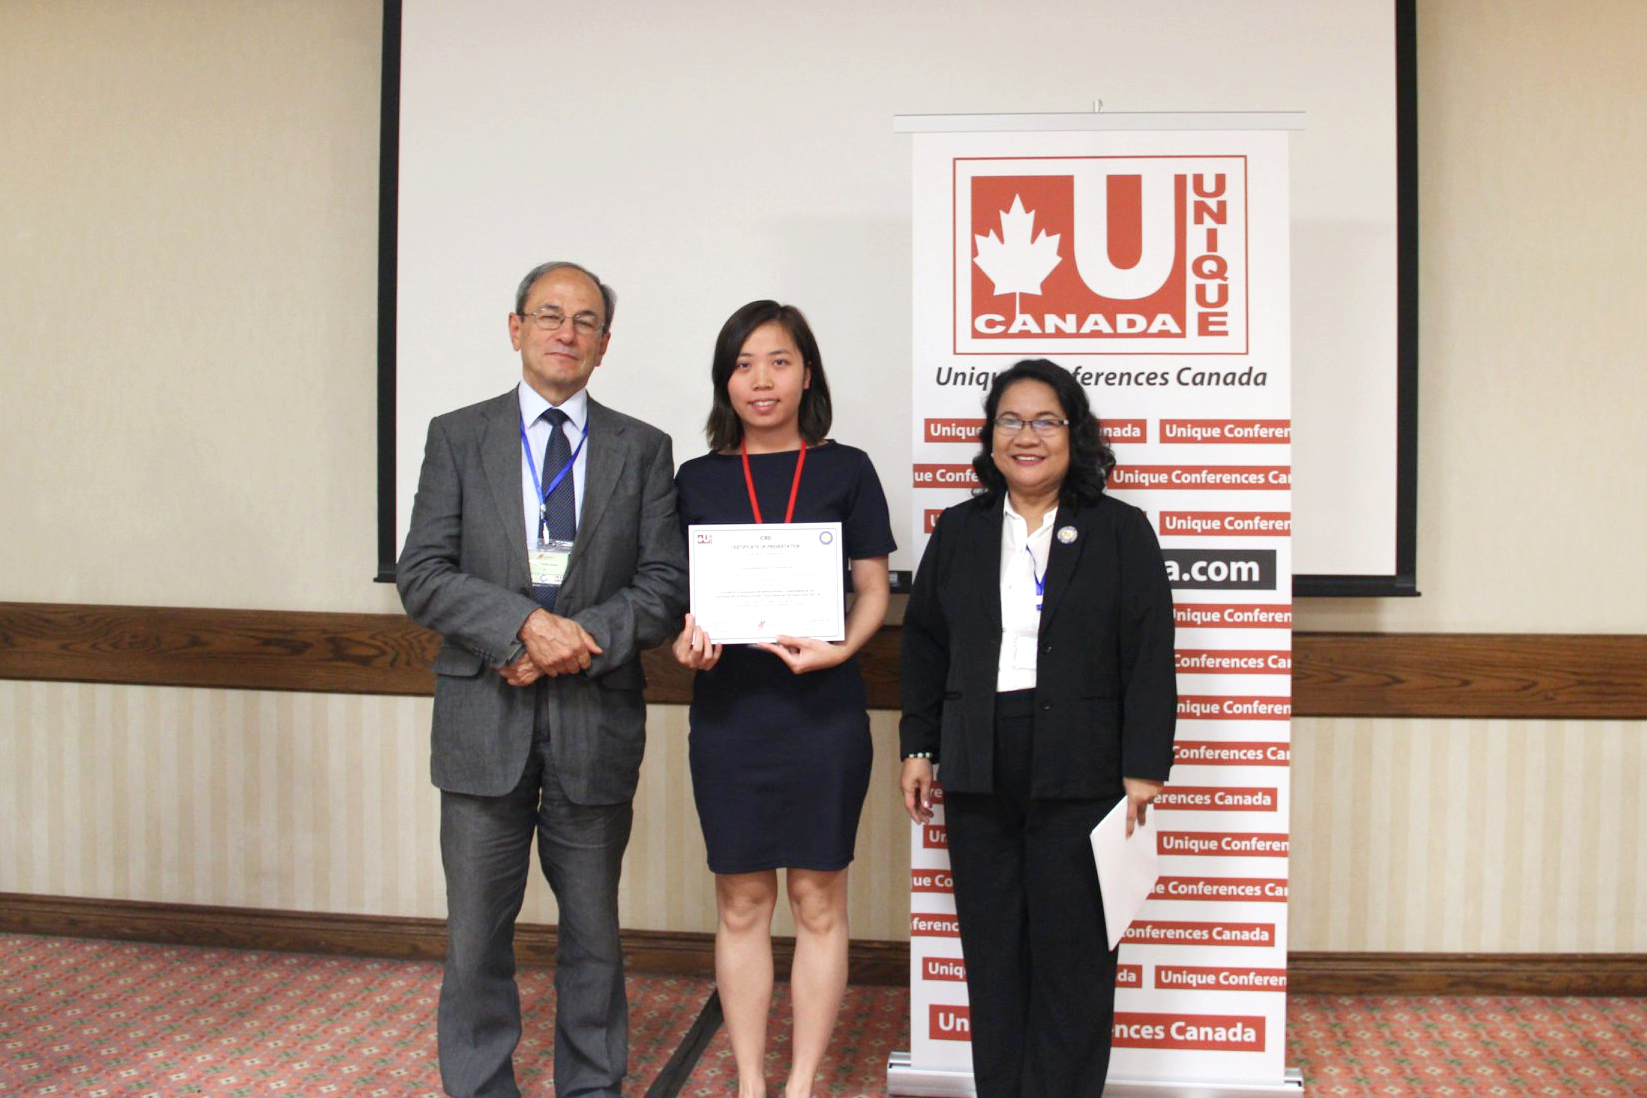 27th – 28th July 2019 – Ms. Michelle Cheng presented at the 4th Canadian International Conference in Advances in Education, Teaching & Technology 2019 (EduTeach2019)